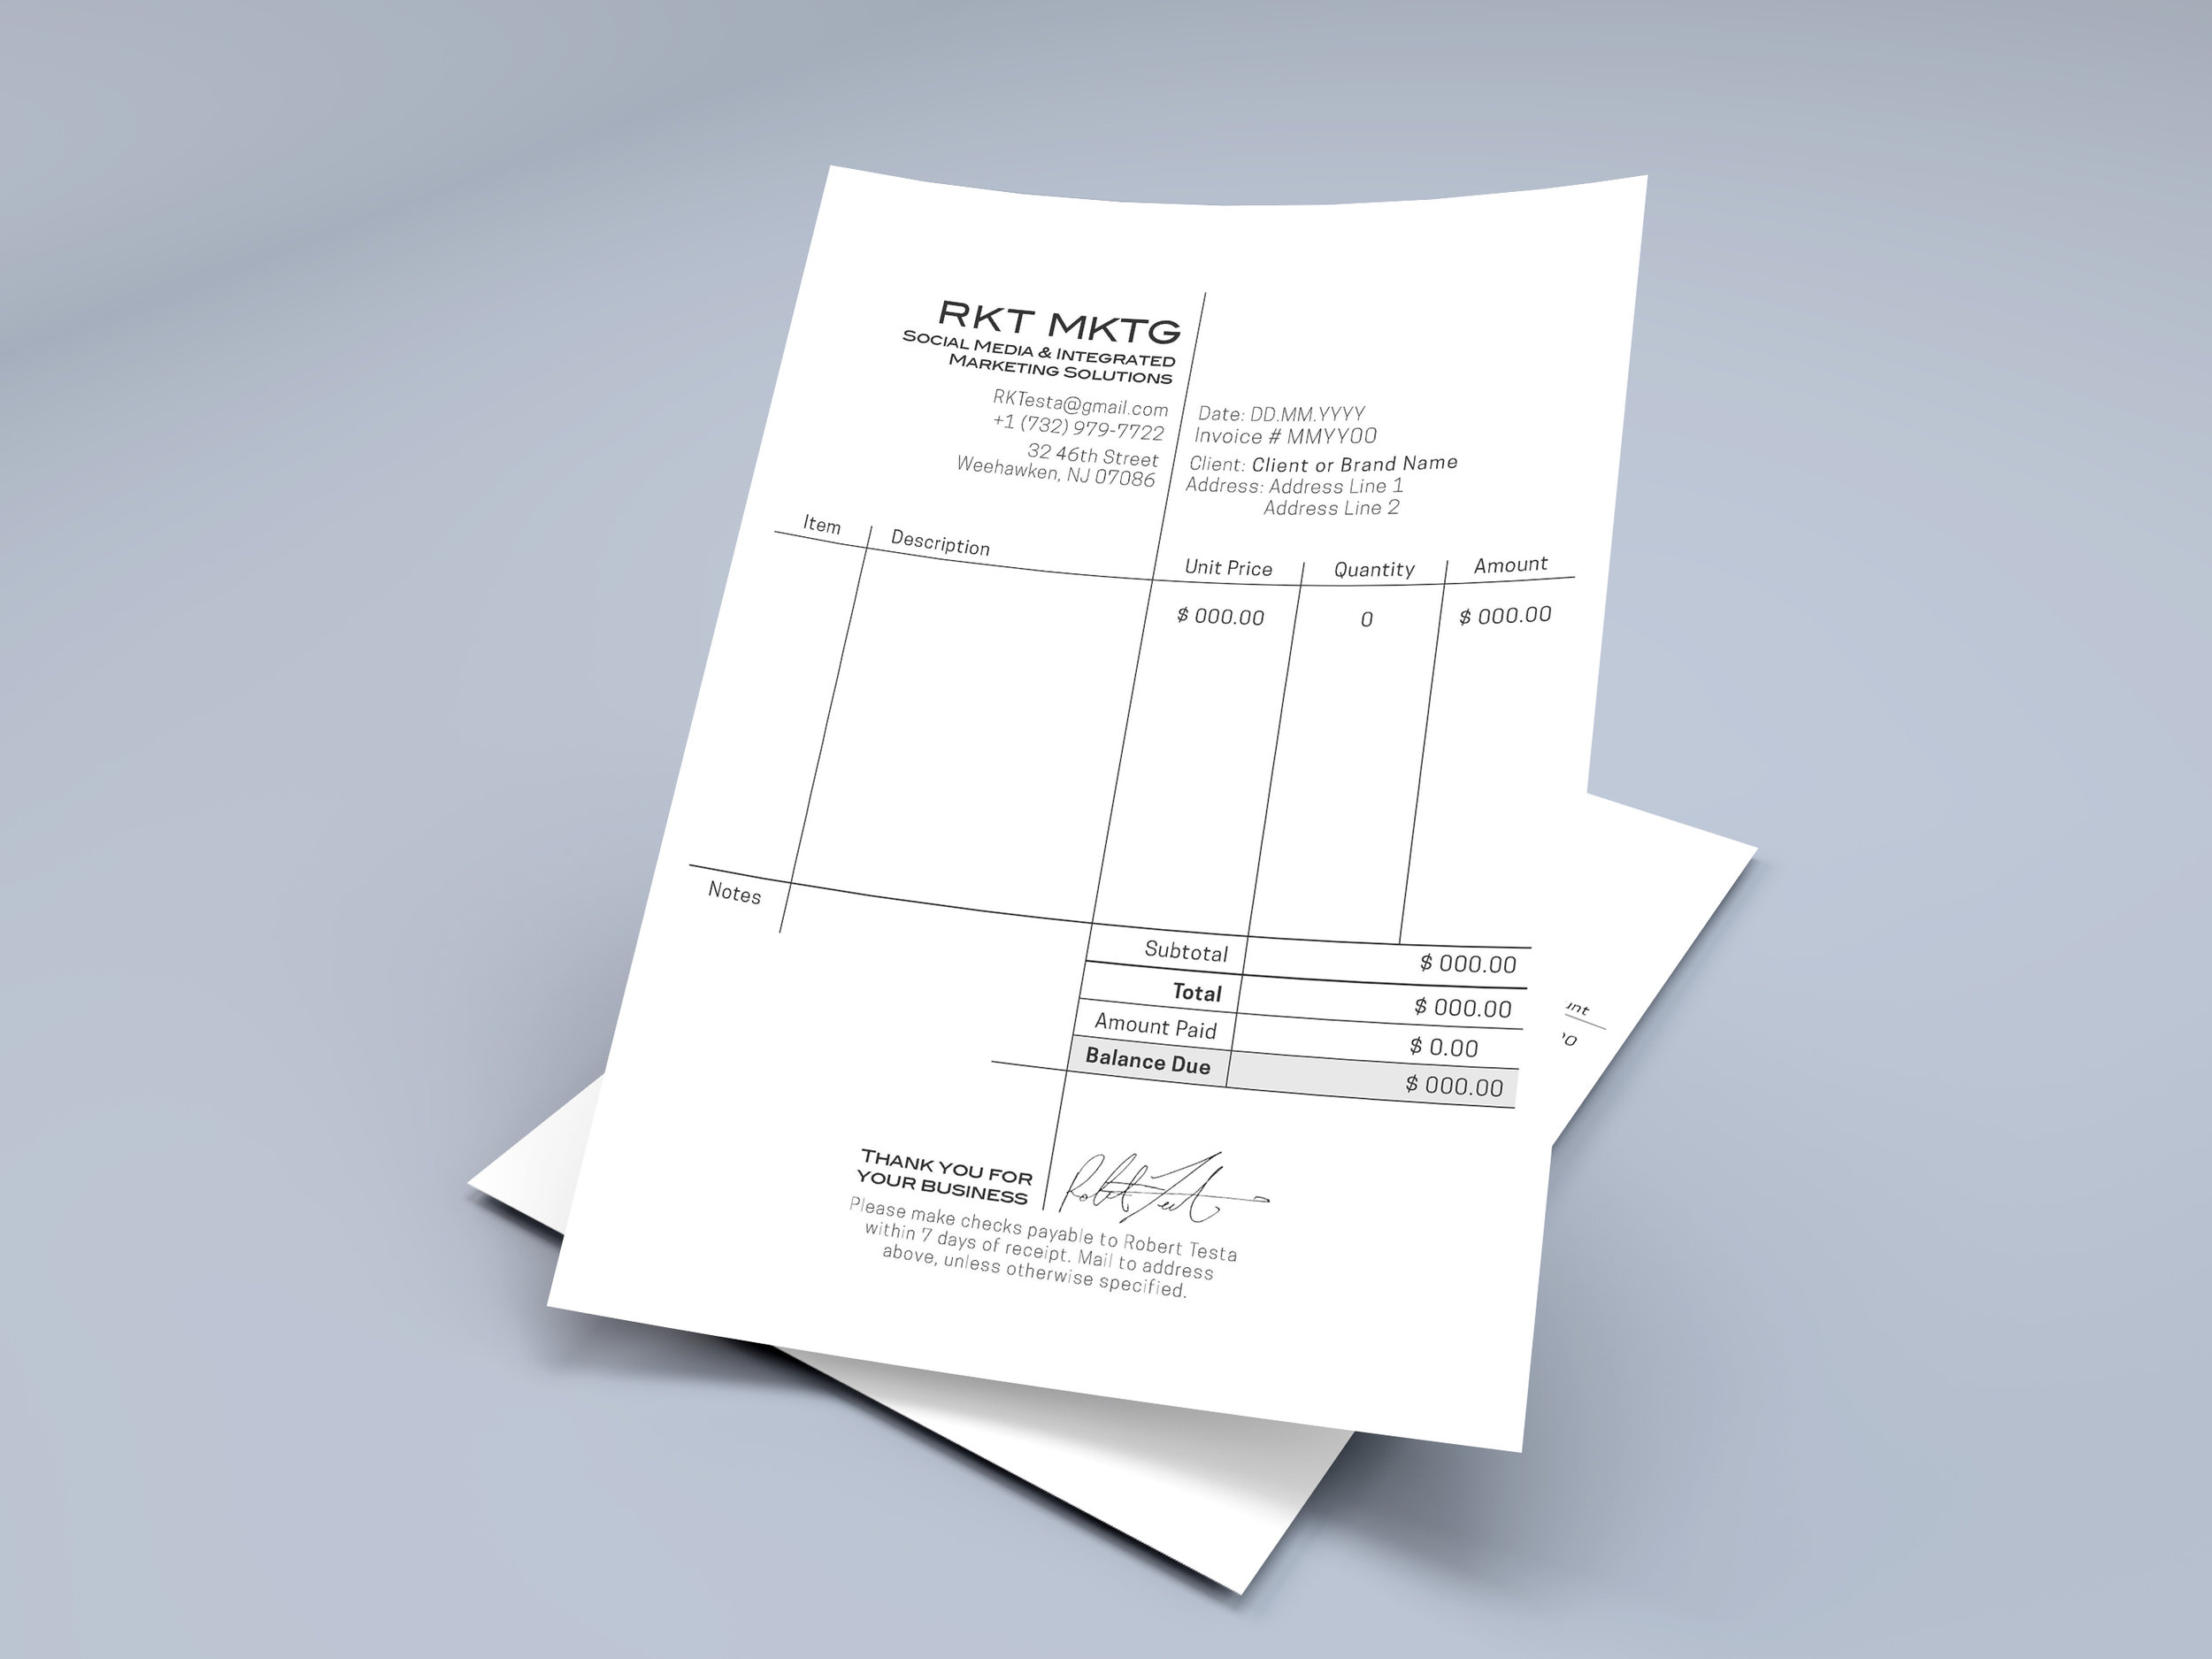 The re-designed invoice plays with the long line going from the logo on top through the description of the work done and down to the CEO's signature as a quality seal.